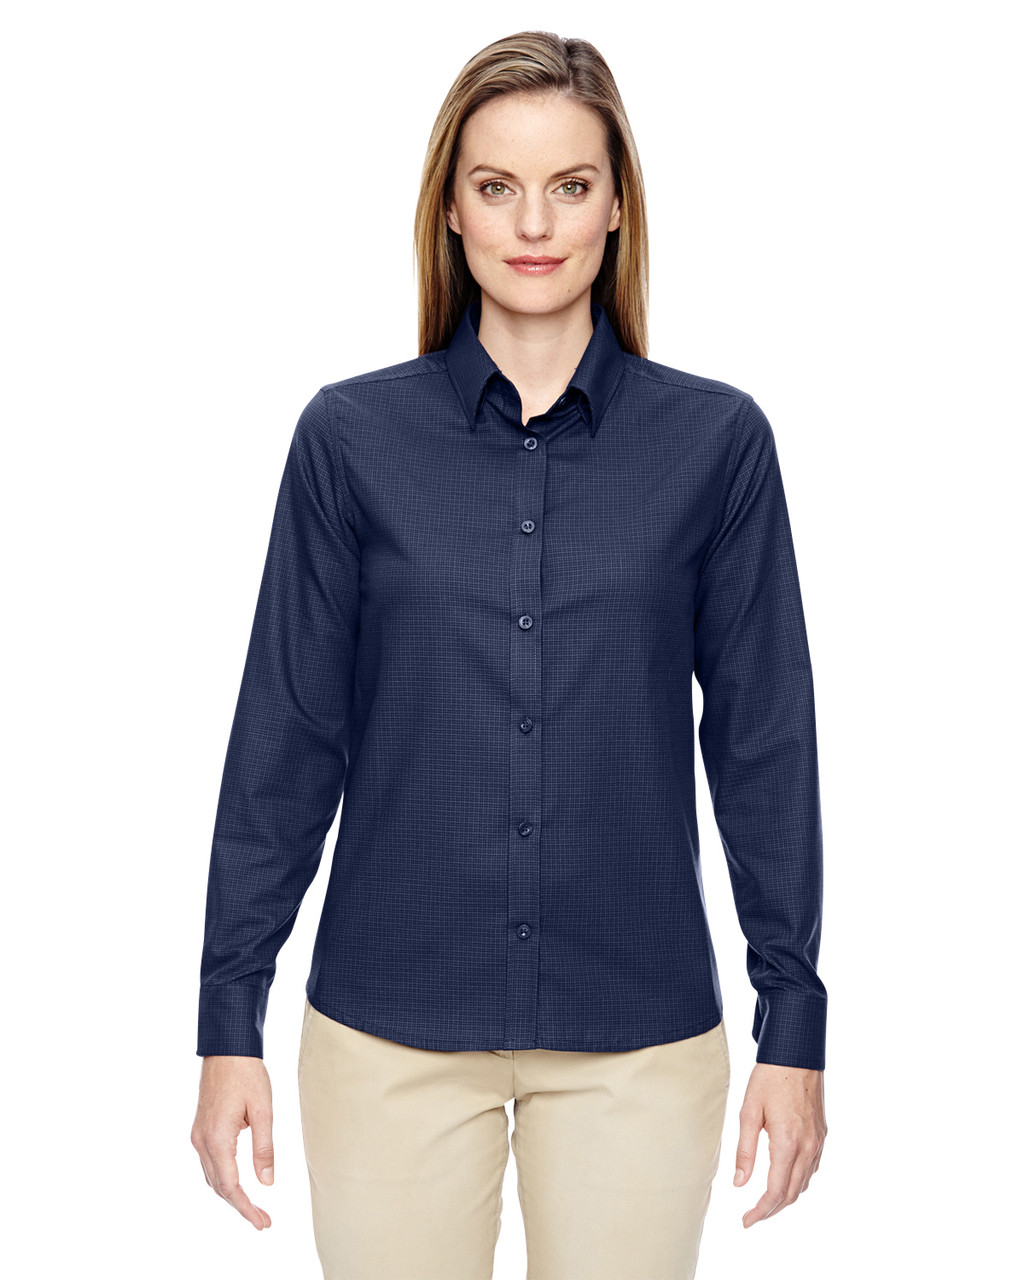 Classic Navy 77043 North End Paramount Wrinkle-Resistant Cotton Blend Twill Checkered Shirt | Blankclothing.ca